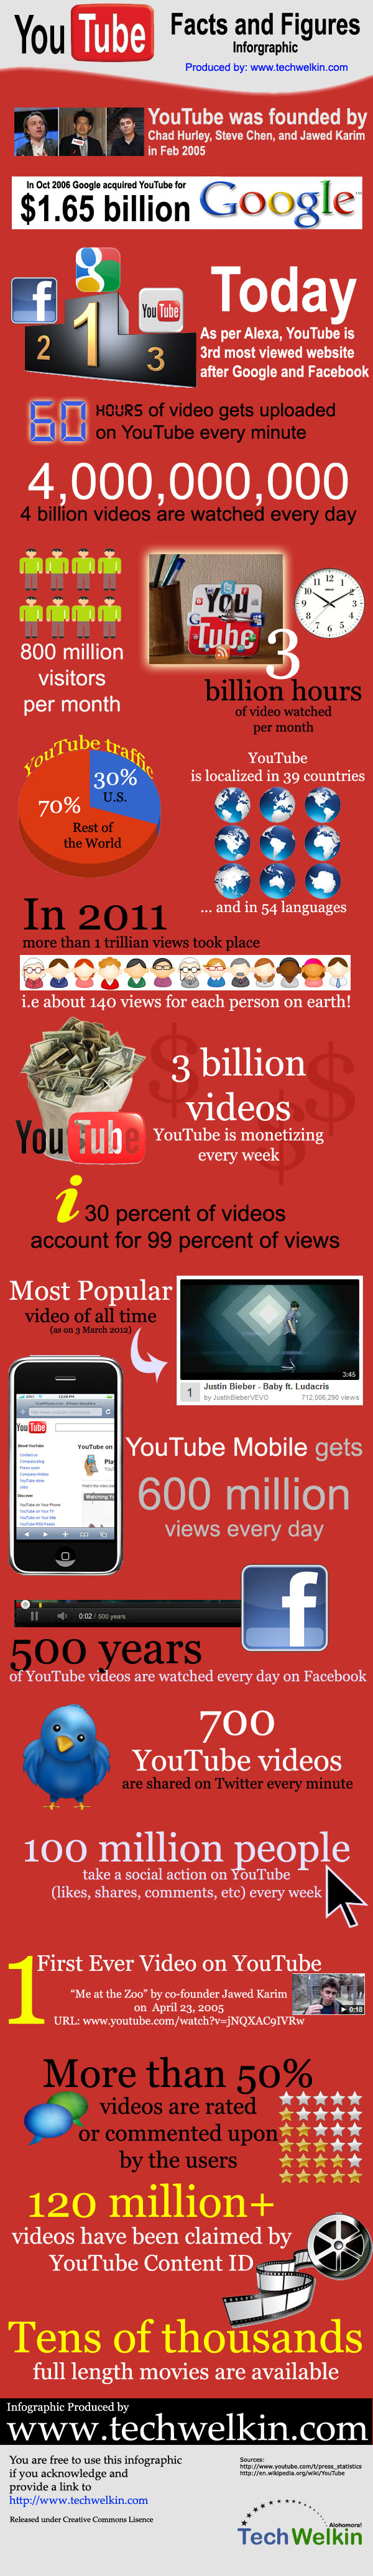 YouTube Facts and Statistics